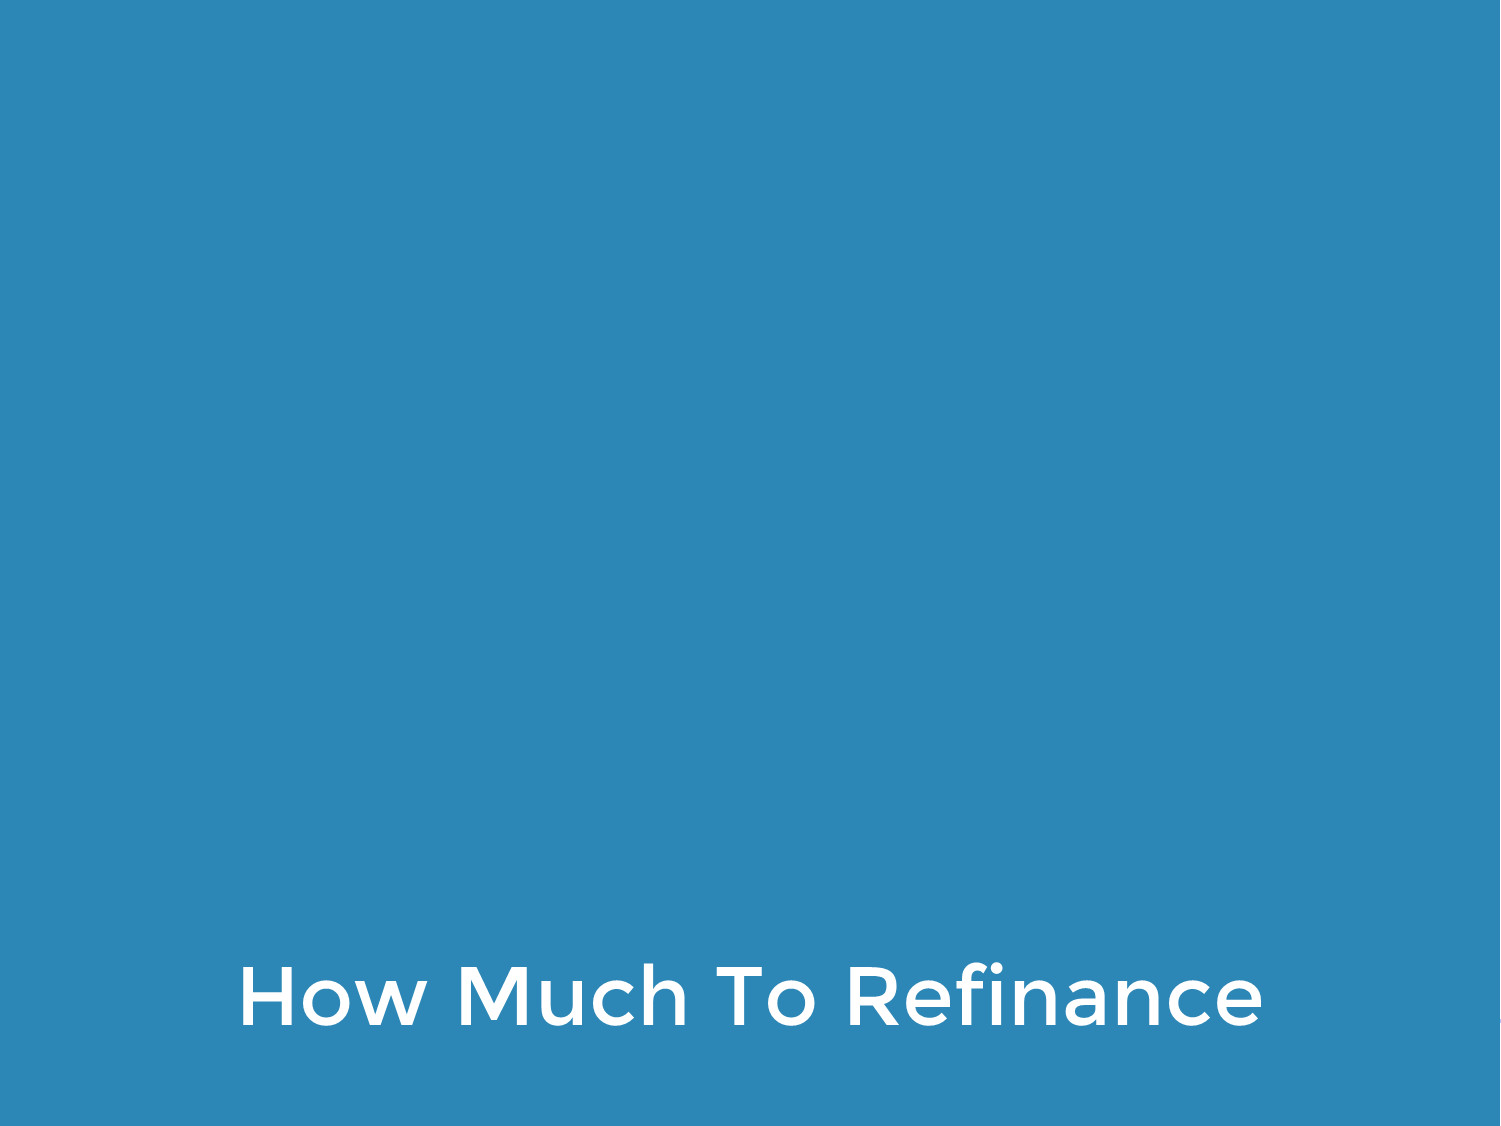 How Much To Refinance